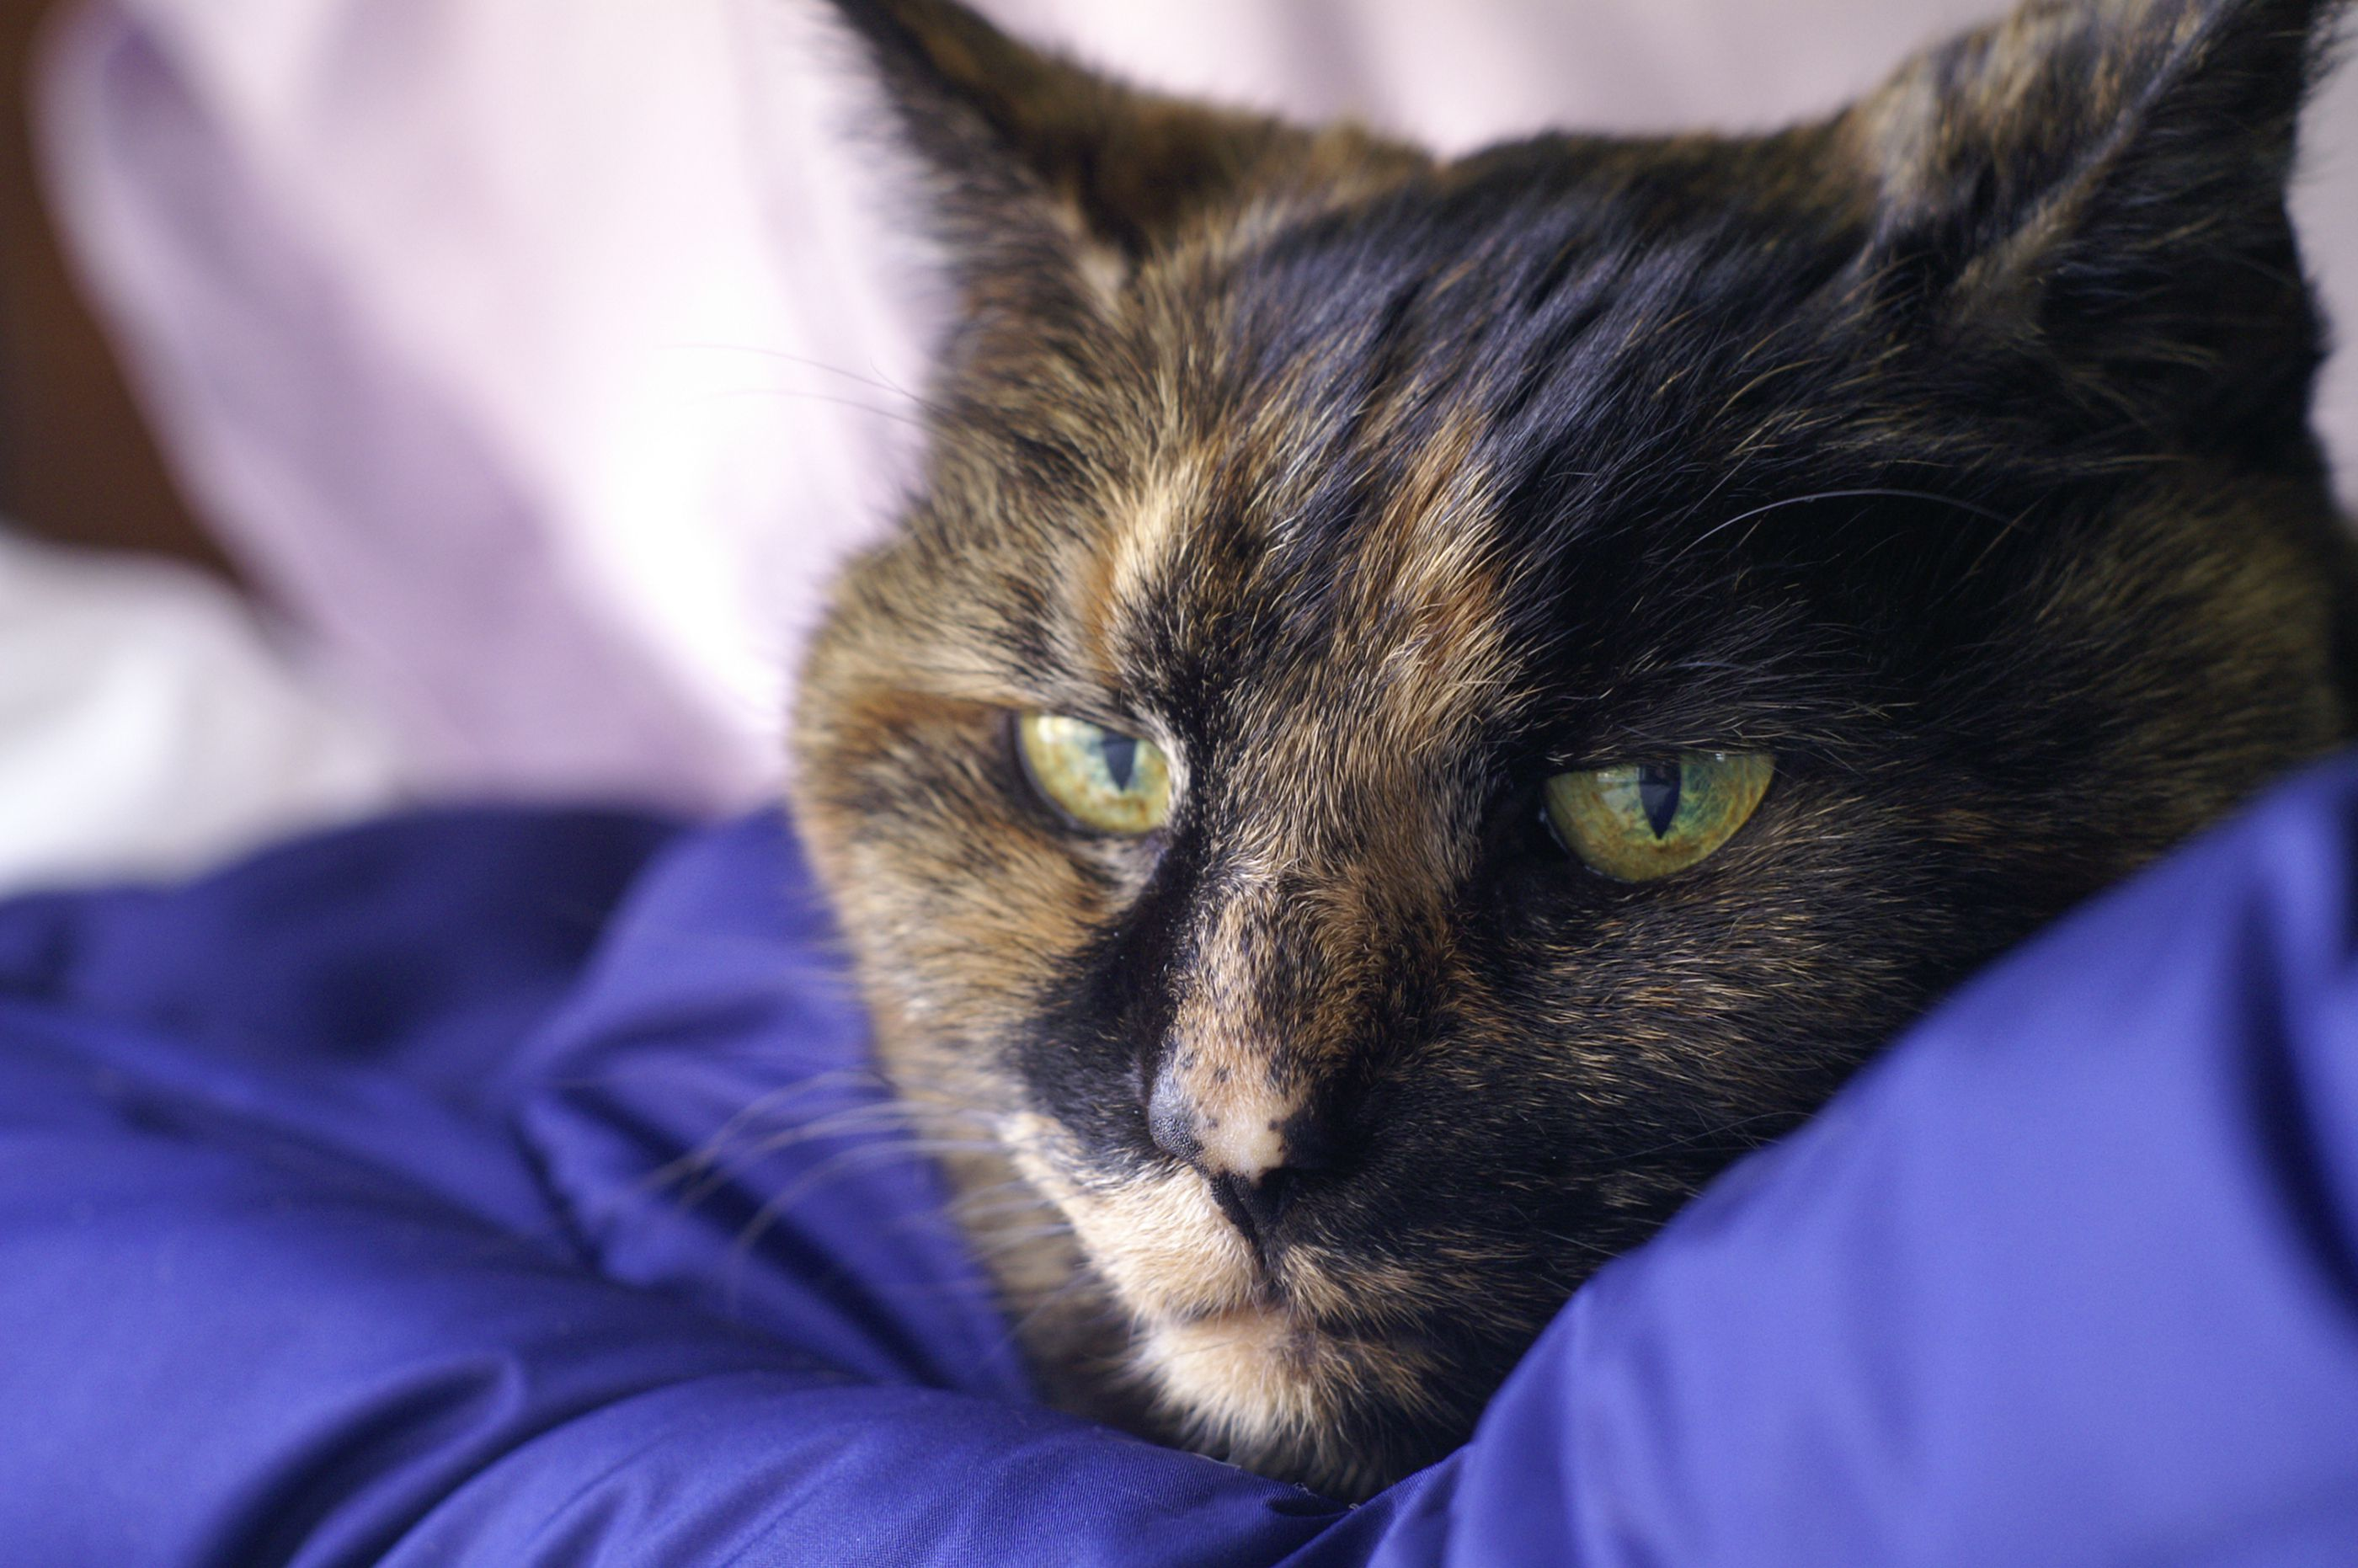 Symptoms and Treatment of Acute Vomiting in Cats